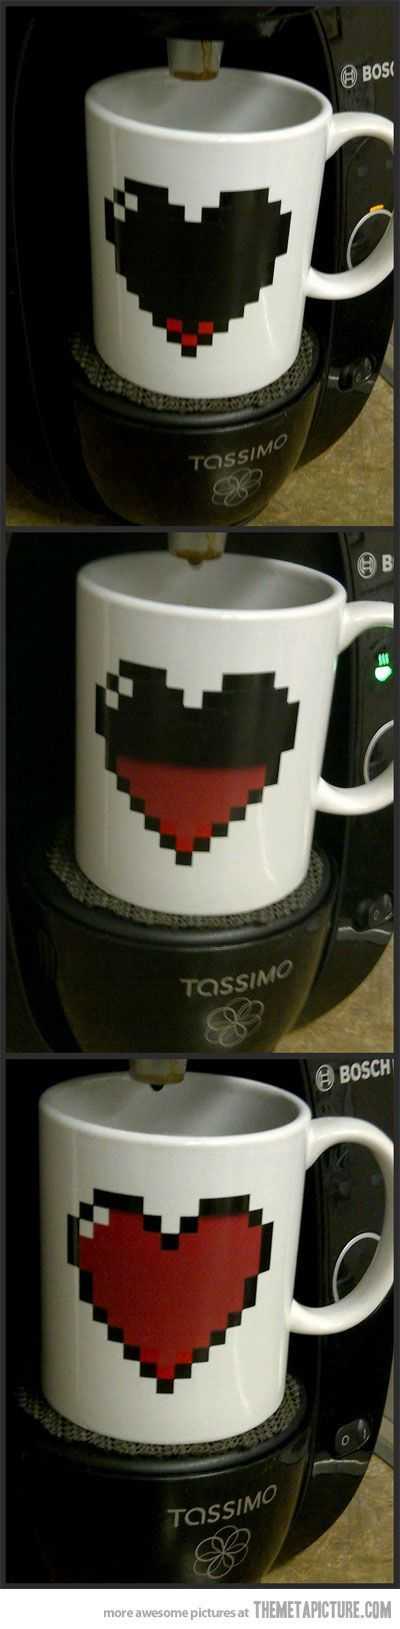 awesome mug pour in a hot beverage and the heart turns red videojuegos quiero y plan de vida. Black Bedroom Furniture Sets. Home Design Ideas